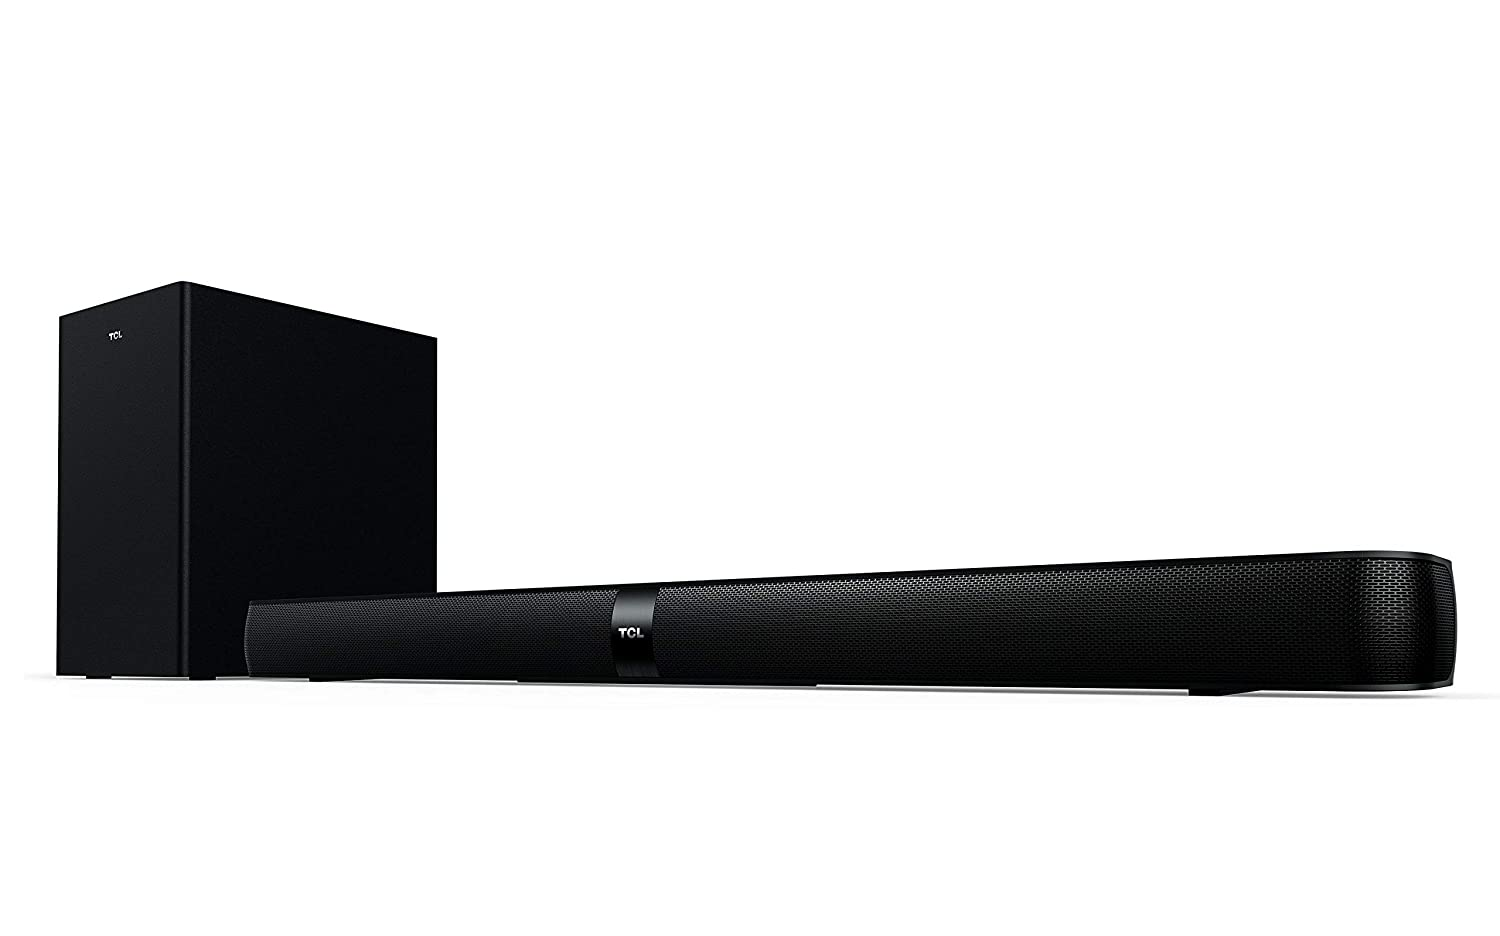 "TCL Alto 7+ 2.1 Channel Home Theater Sound Bar with Wireless Subwoofer - TS7010, 36"", Black"